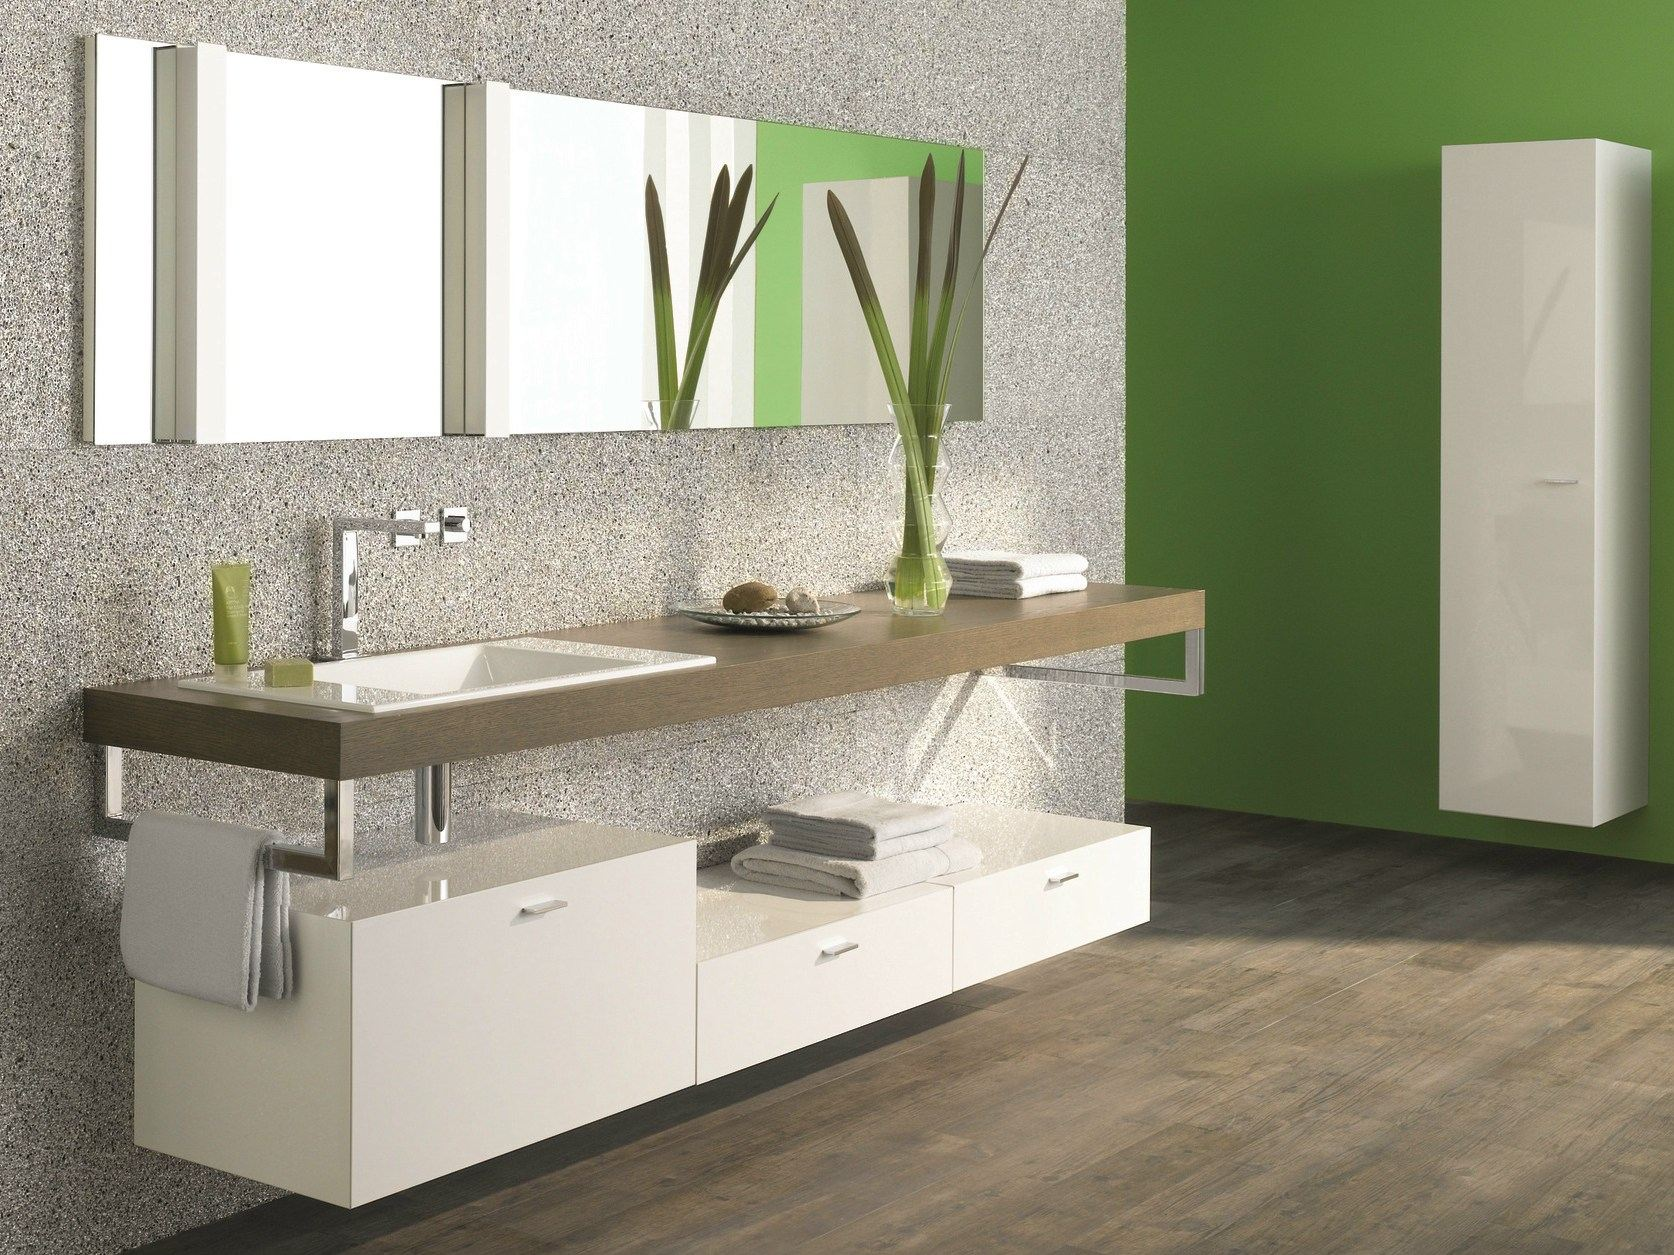 plan de toilette simple en bois betteroom tr gerplatte by. Black Bedroom Furniture Sets. Home Design Ideas